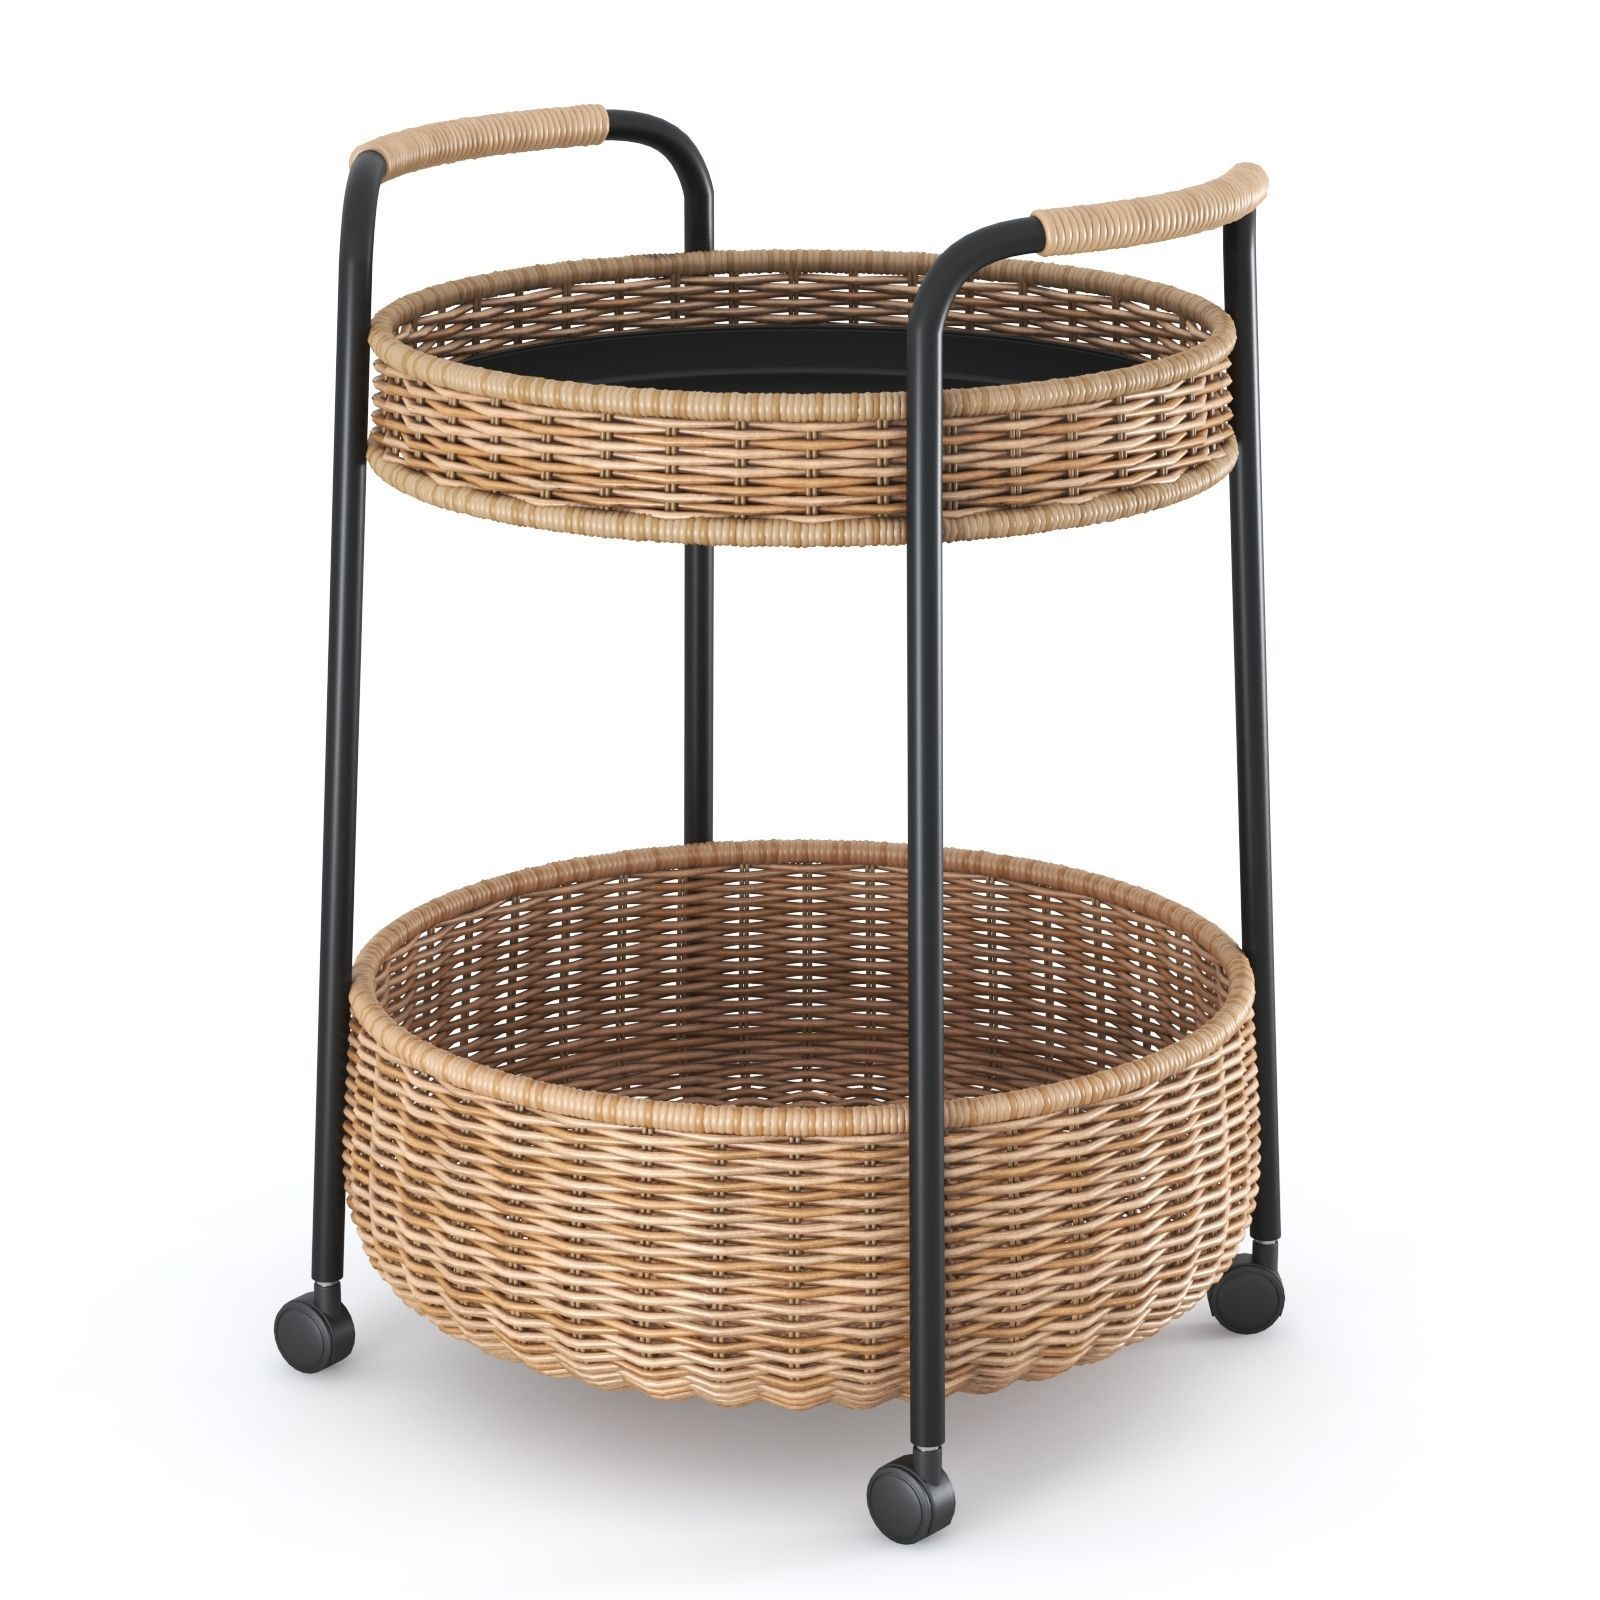 Rattan Ikea Lubban Serving Cart With Storage Rattan Anthracite By Ikea 3d Model